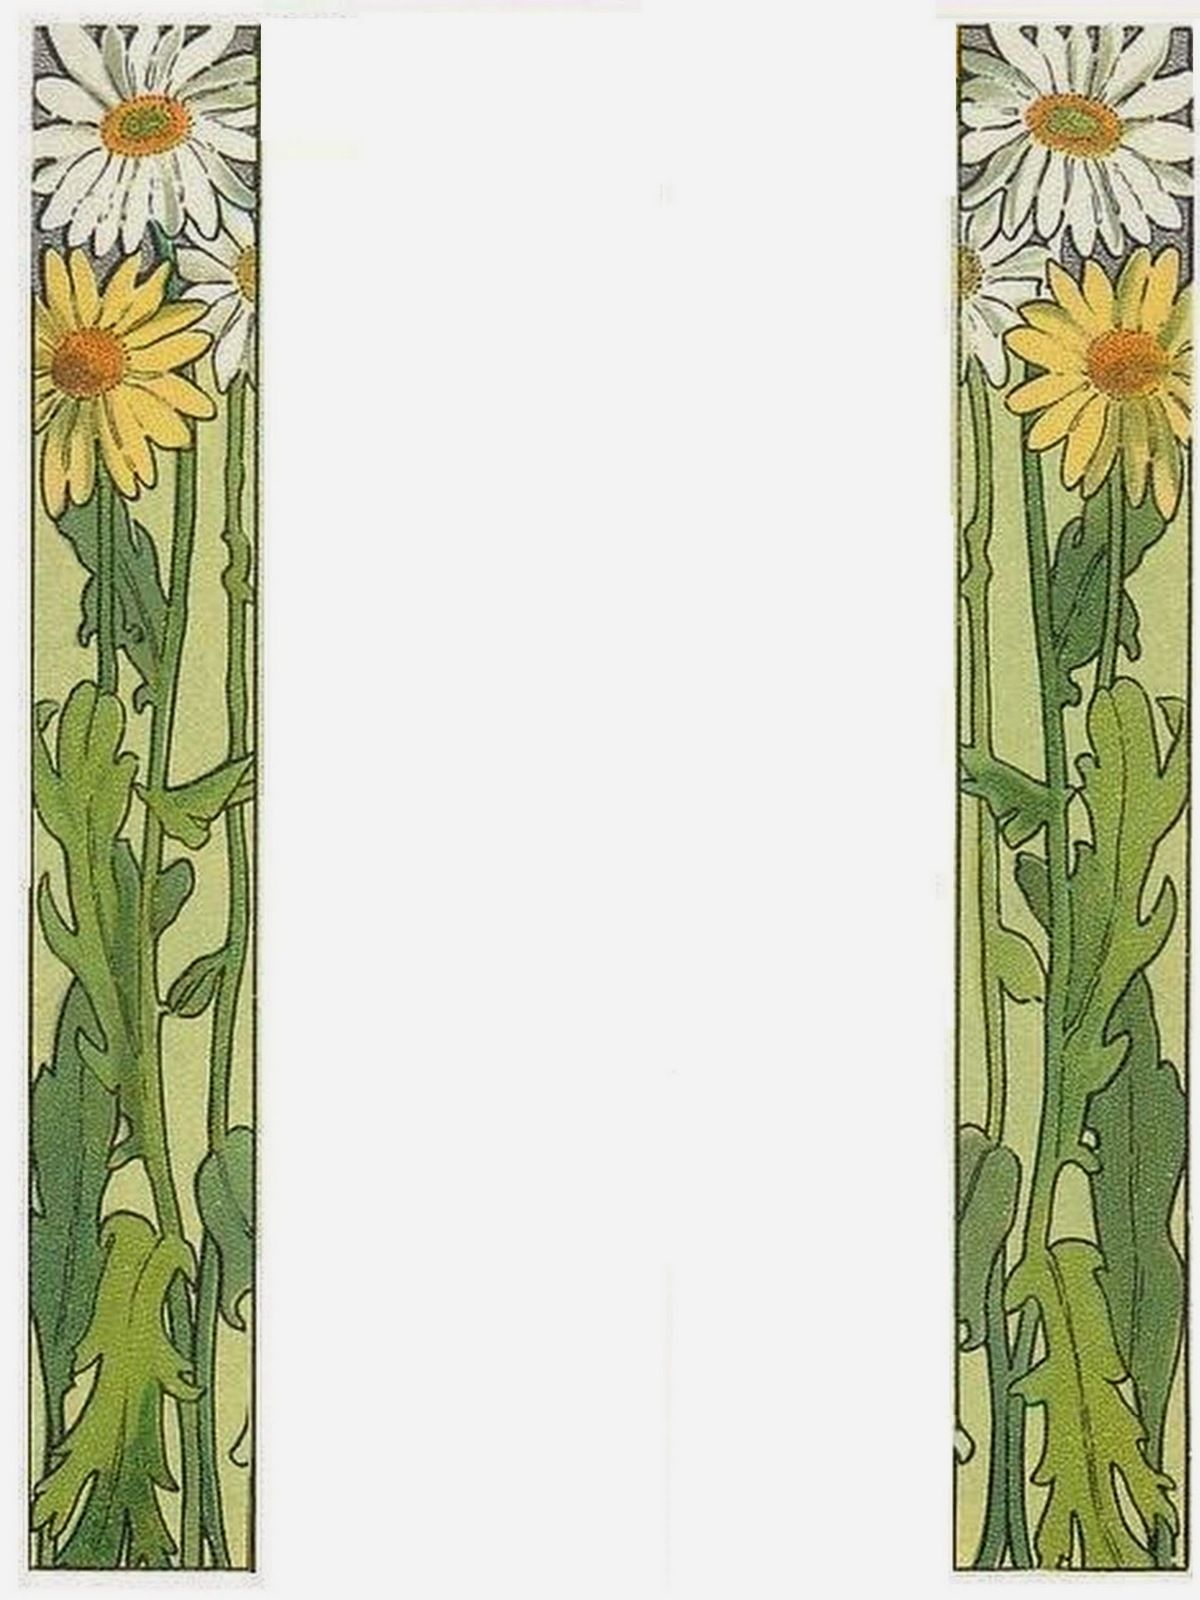 bumble button daisy the birth flower for the month of april